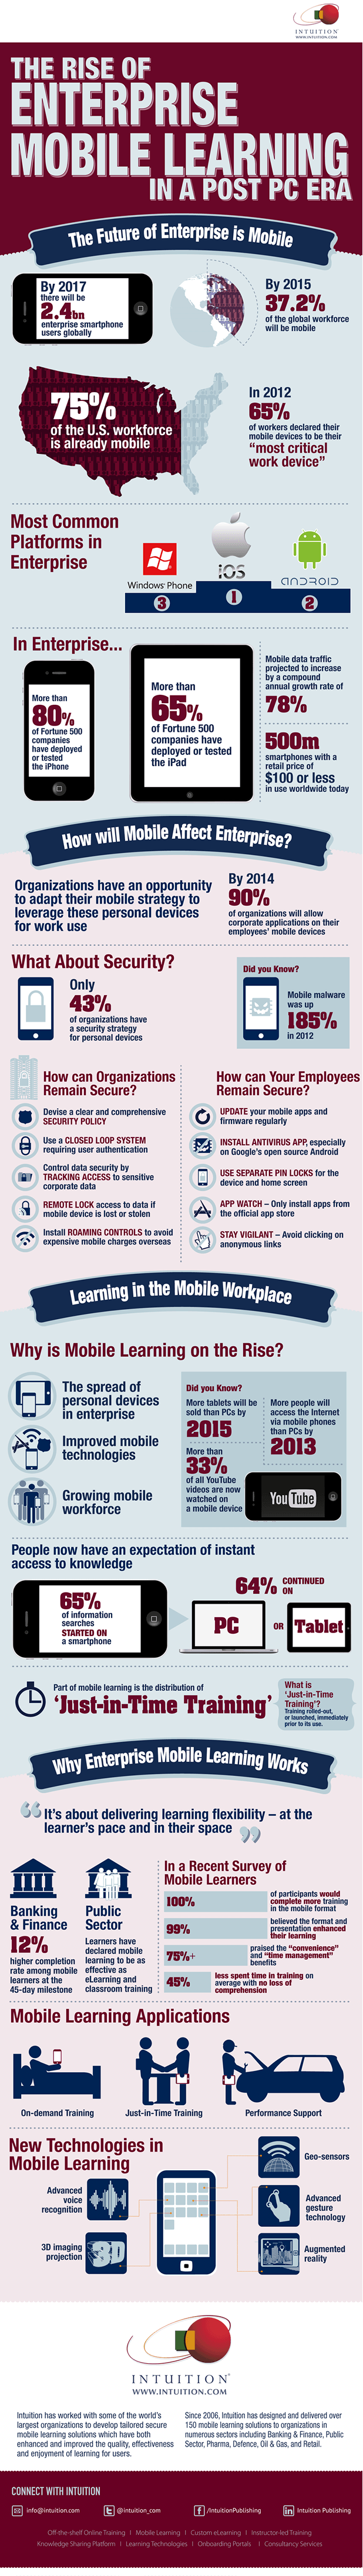 The Future of Enterprise Mobile Learning Infographic - e-Learning Infographicse-Learning Infographics thumbnail